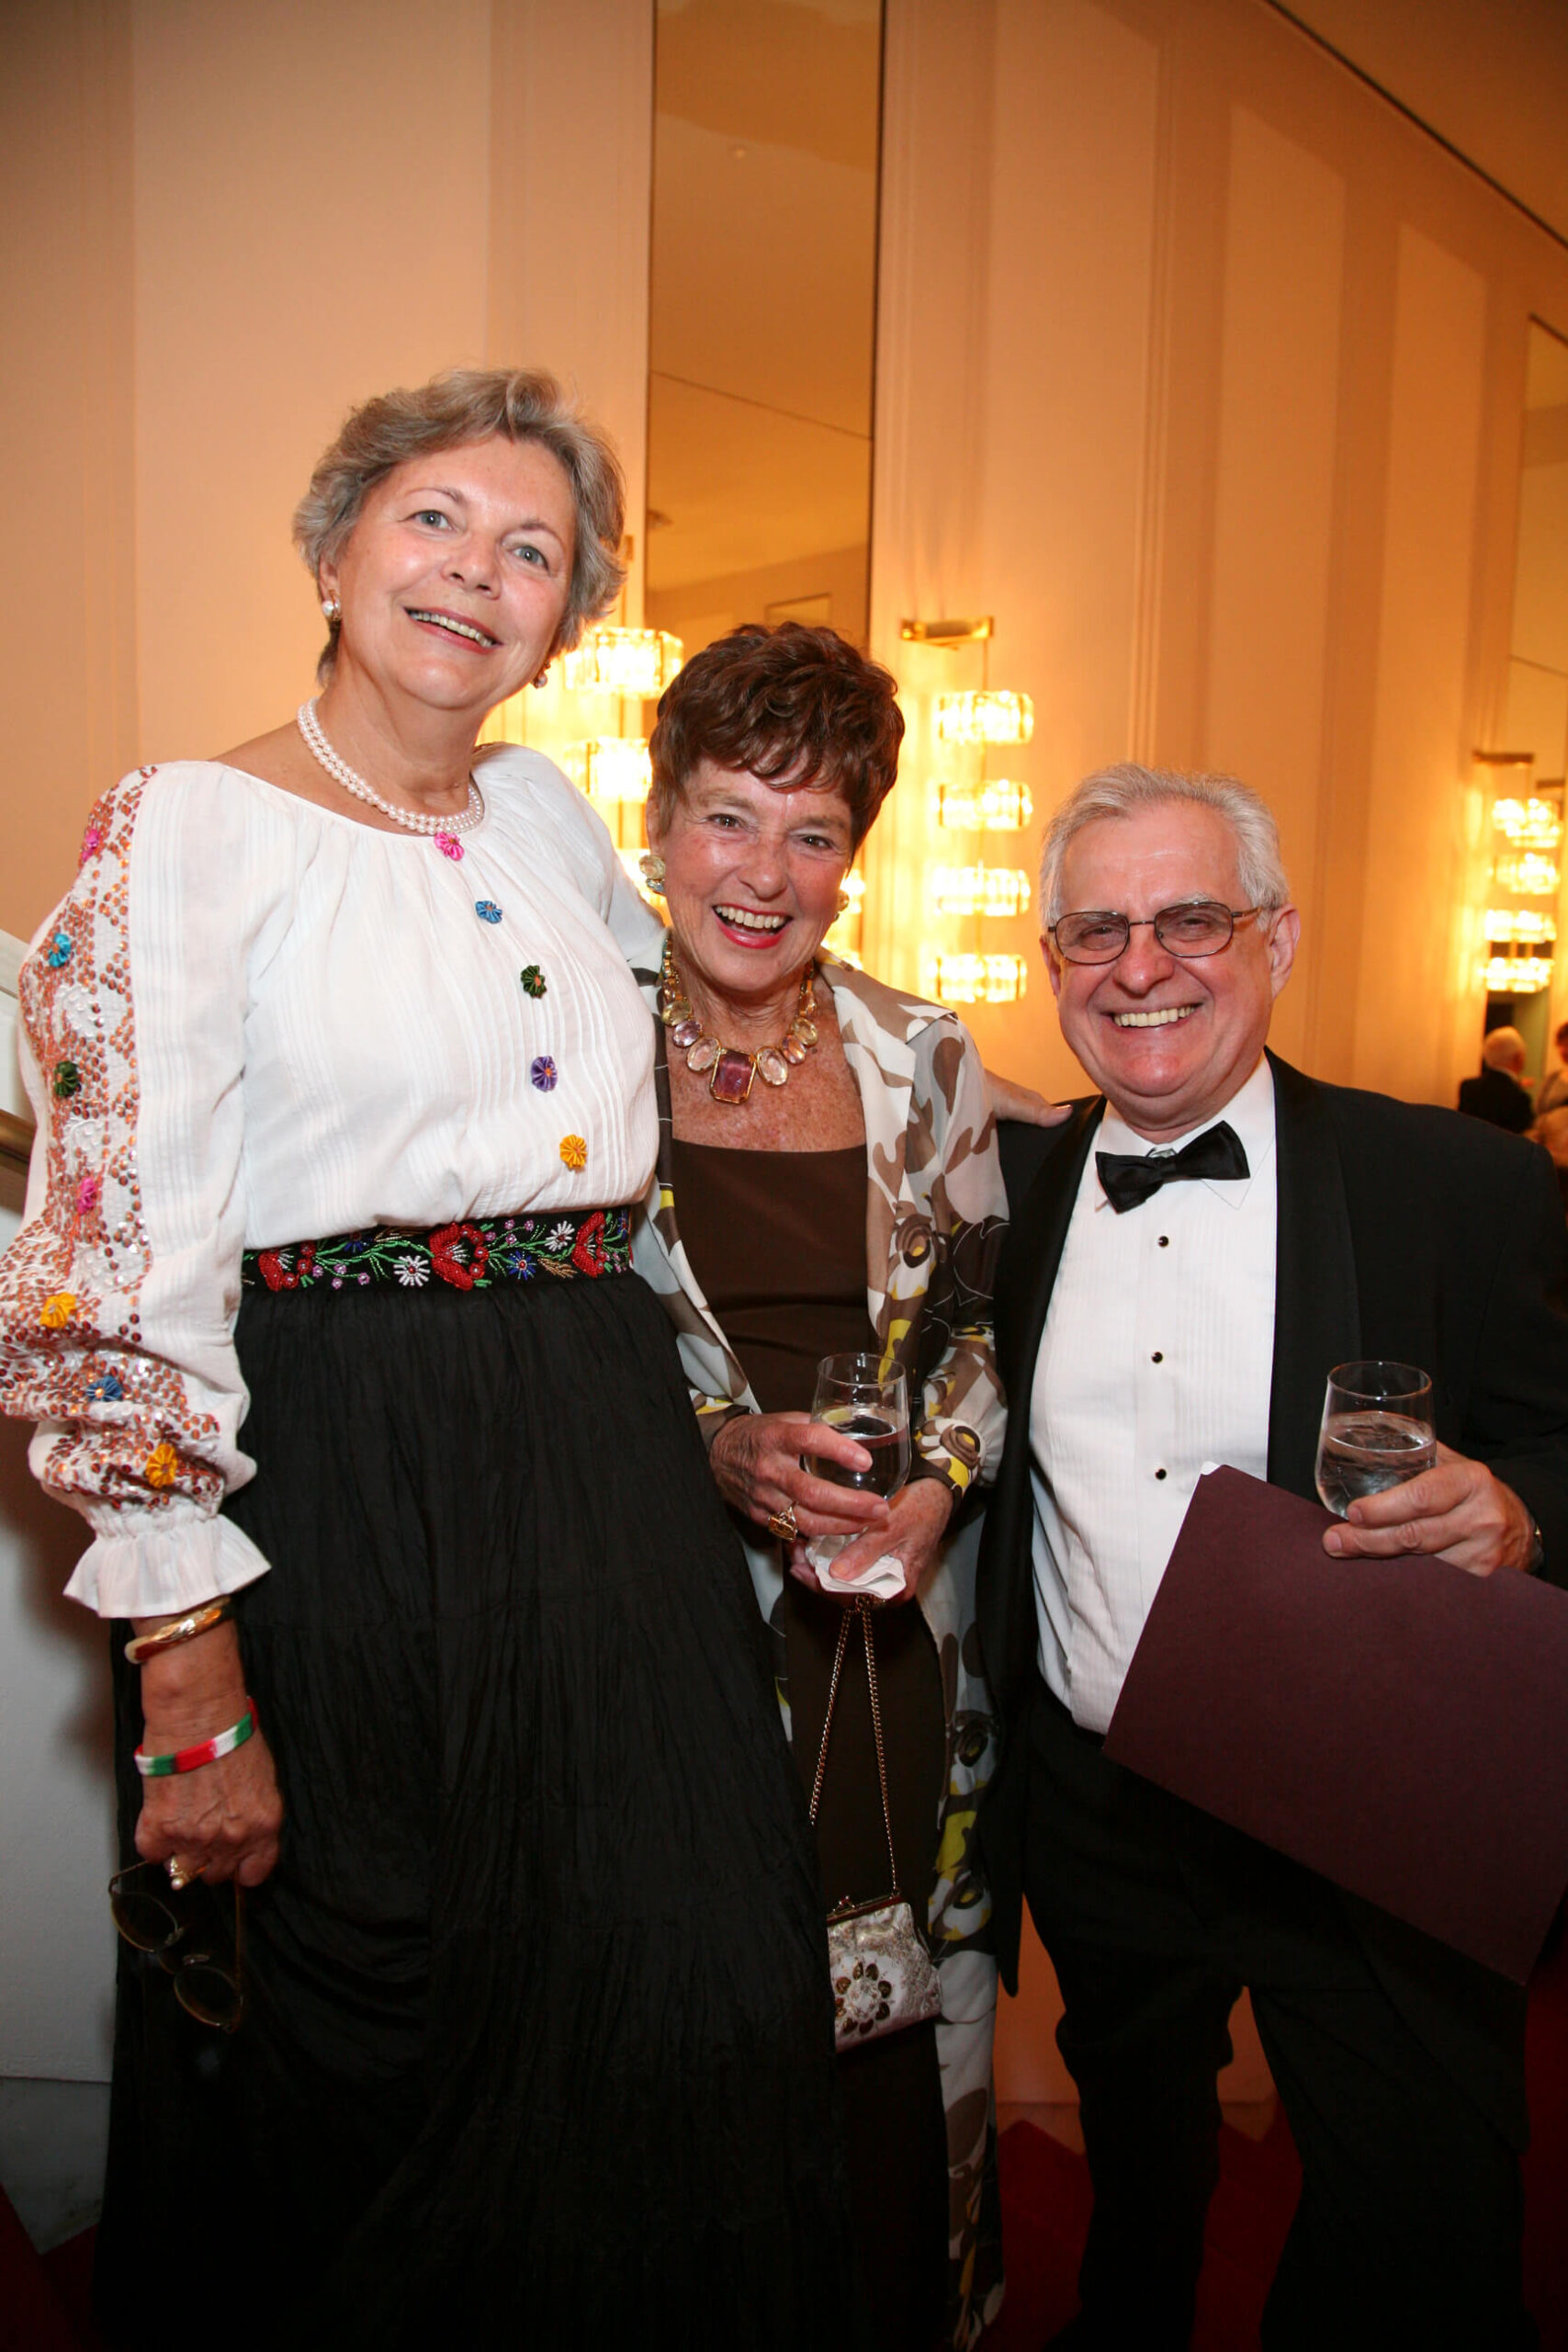 Mrs. Edith Lauer, Dr. Jeanette Grasselli Brown, and Mr. Zsolt Szekeres